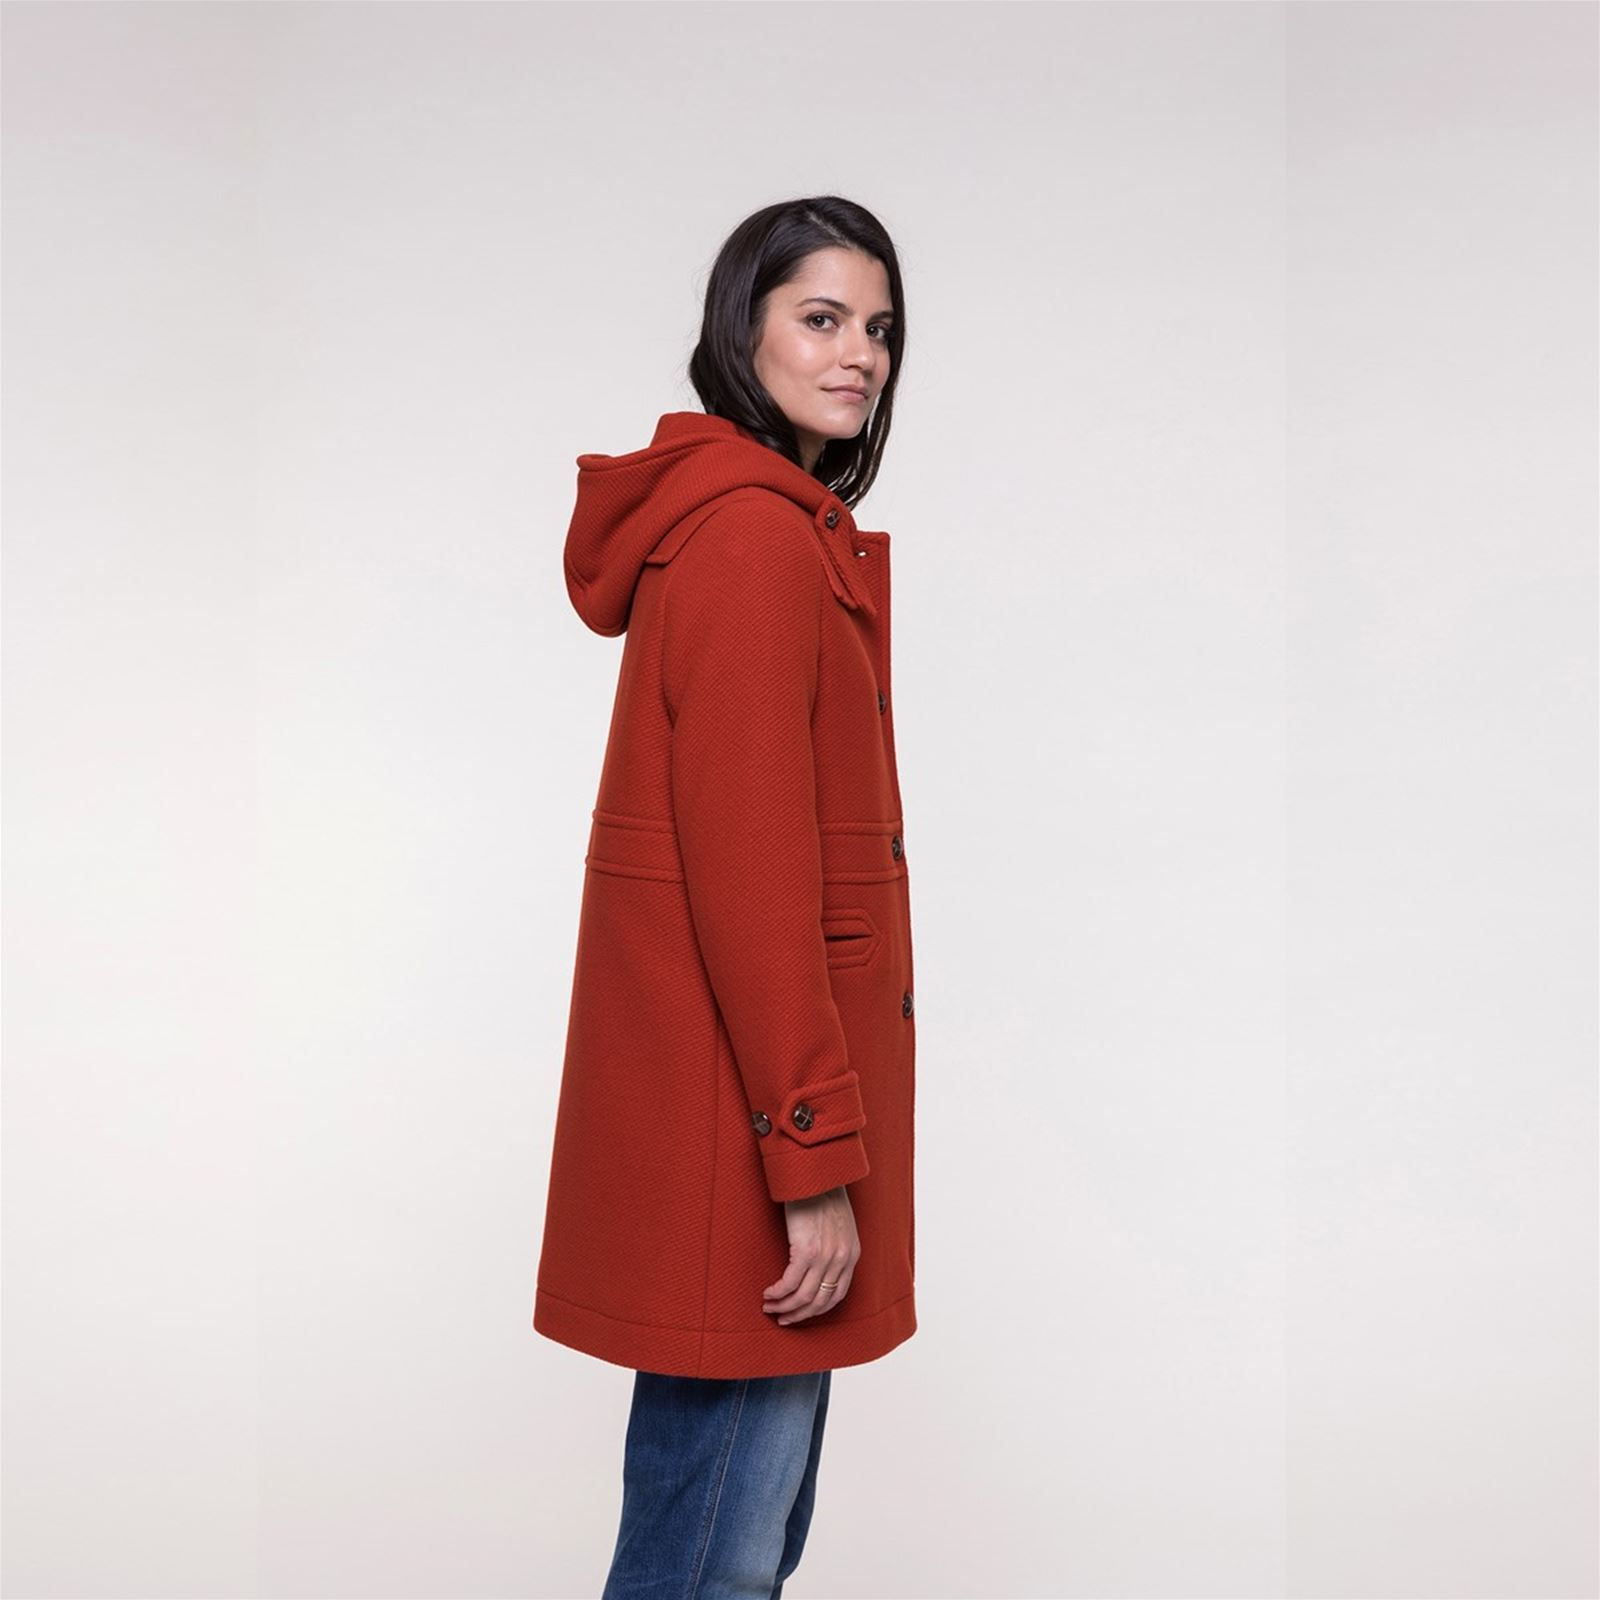 Trench and coat Manteau 75% laine reliefé - rouge   BrandAlley d50cafbe45ce